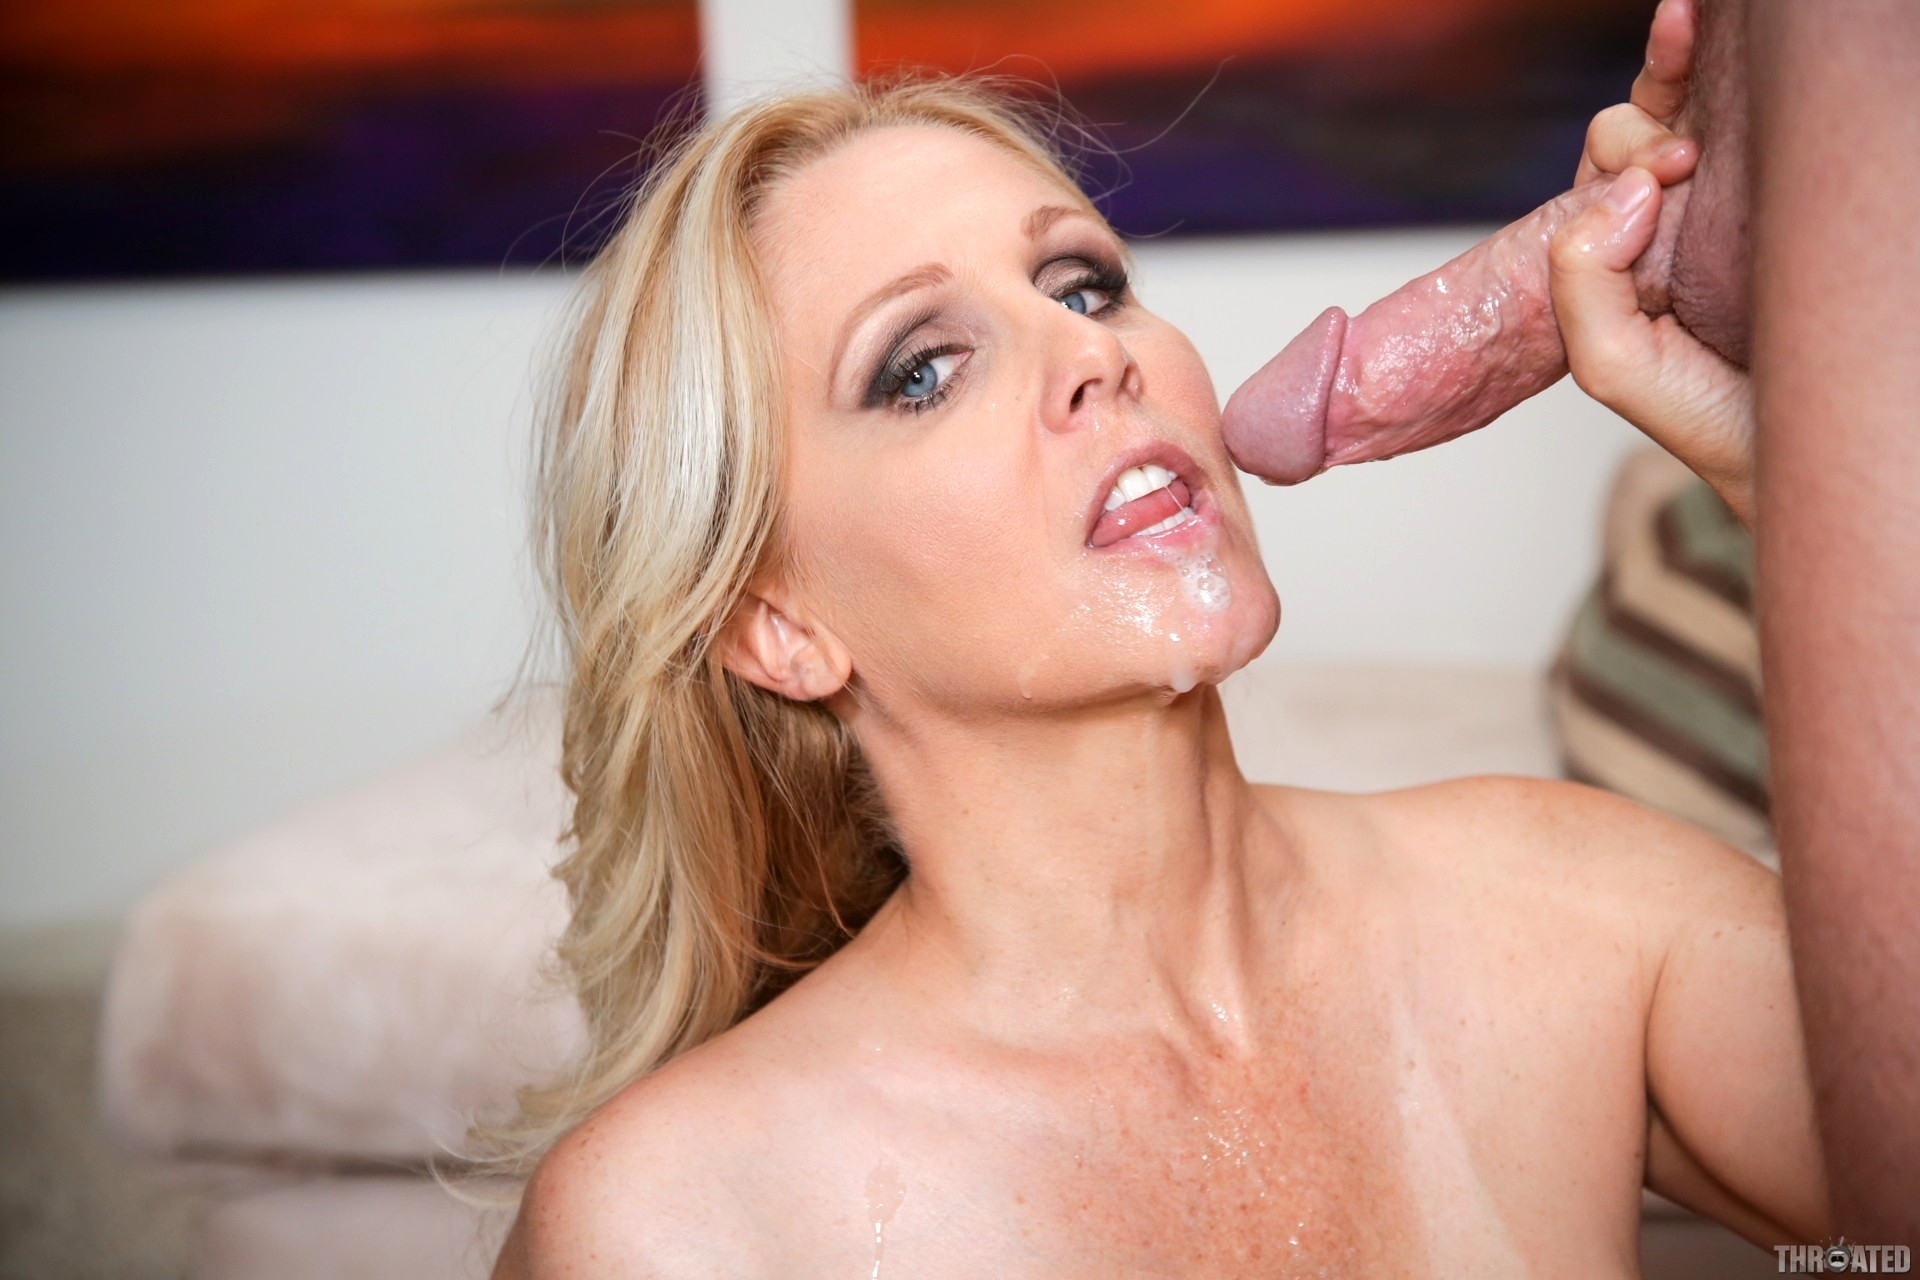 hd porn from Julia ann